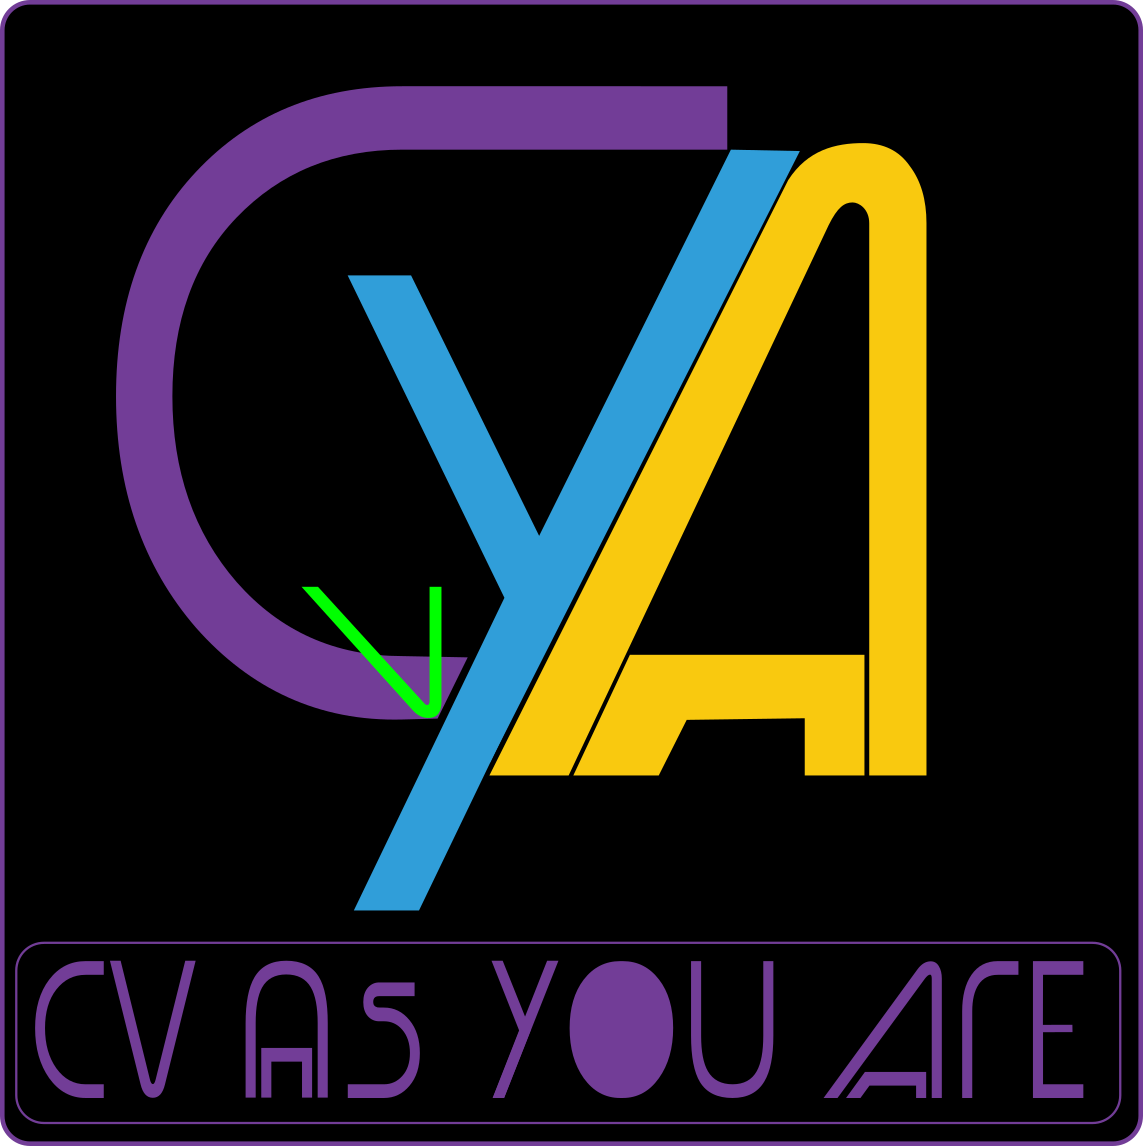 CV as You Are